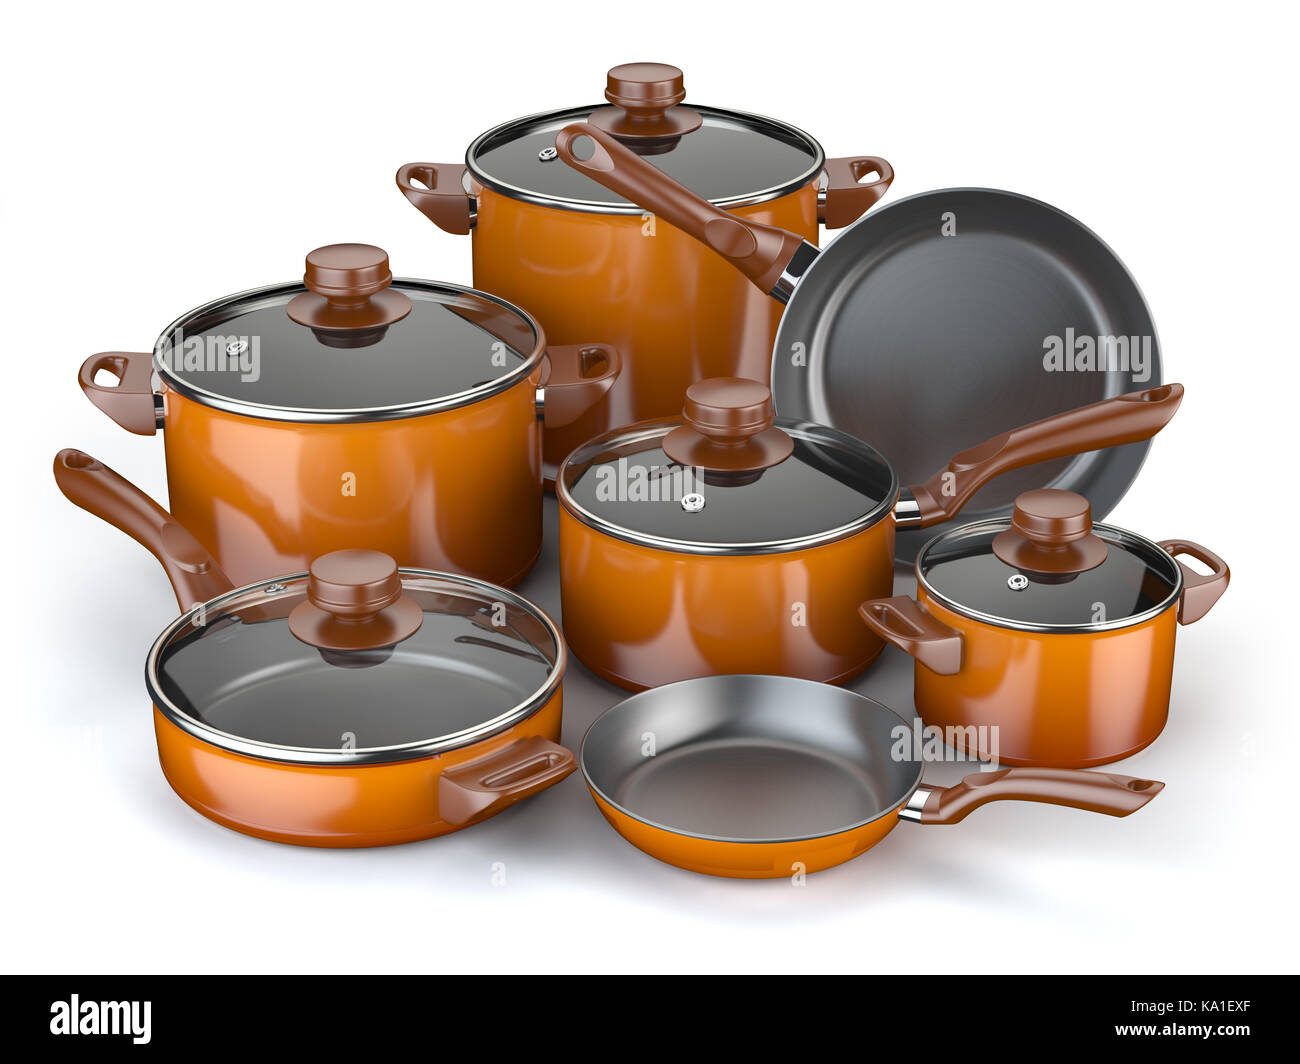 Pots and pans. Set of cooking kitchen utensils and cookware ...